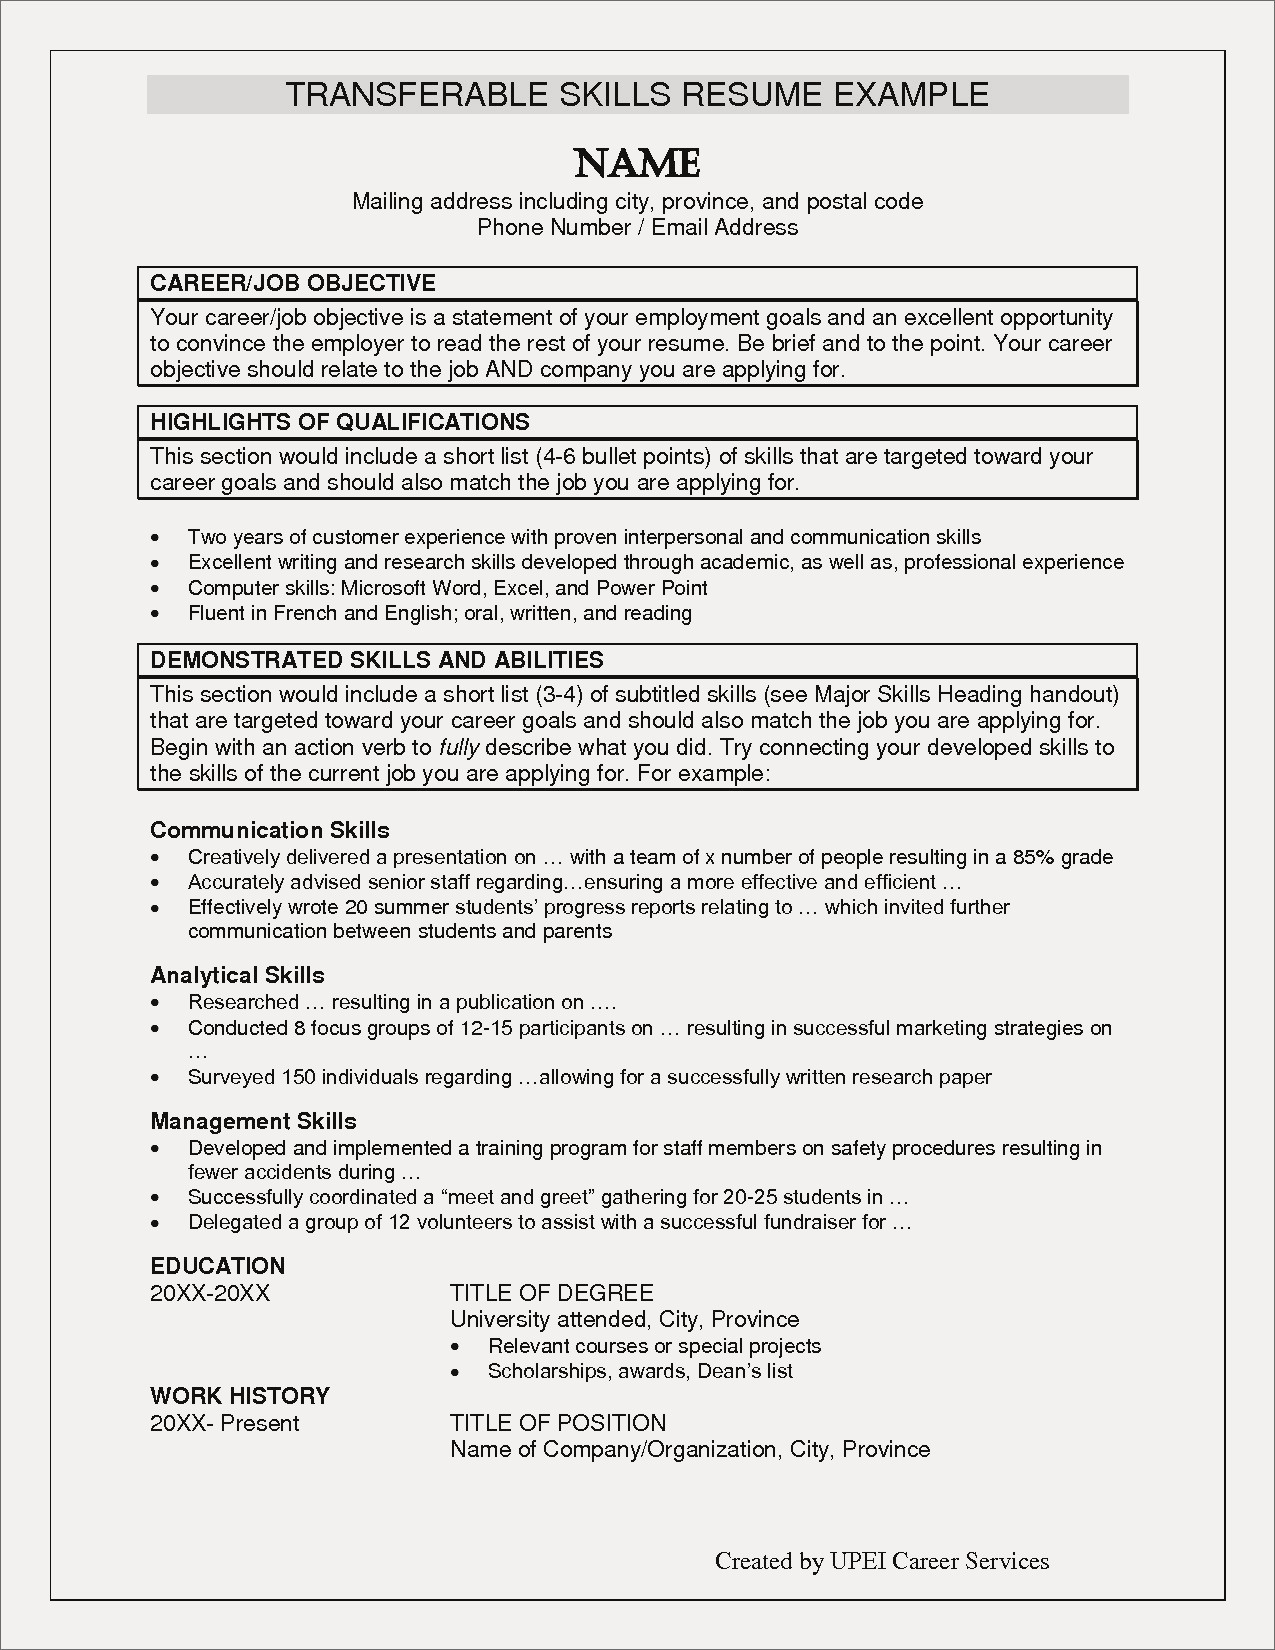 Job Objective for Resume - Resume Career Objectives Refrence Career Focus Resume New Career